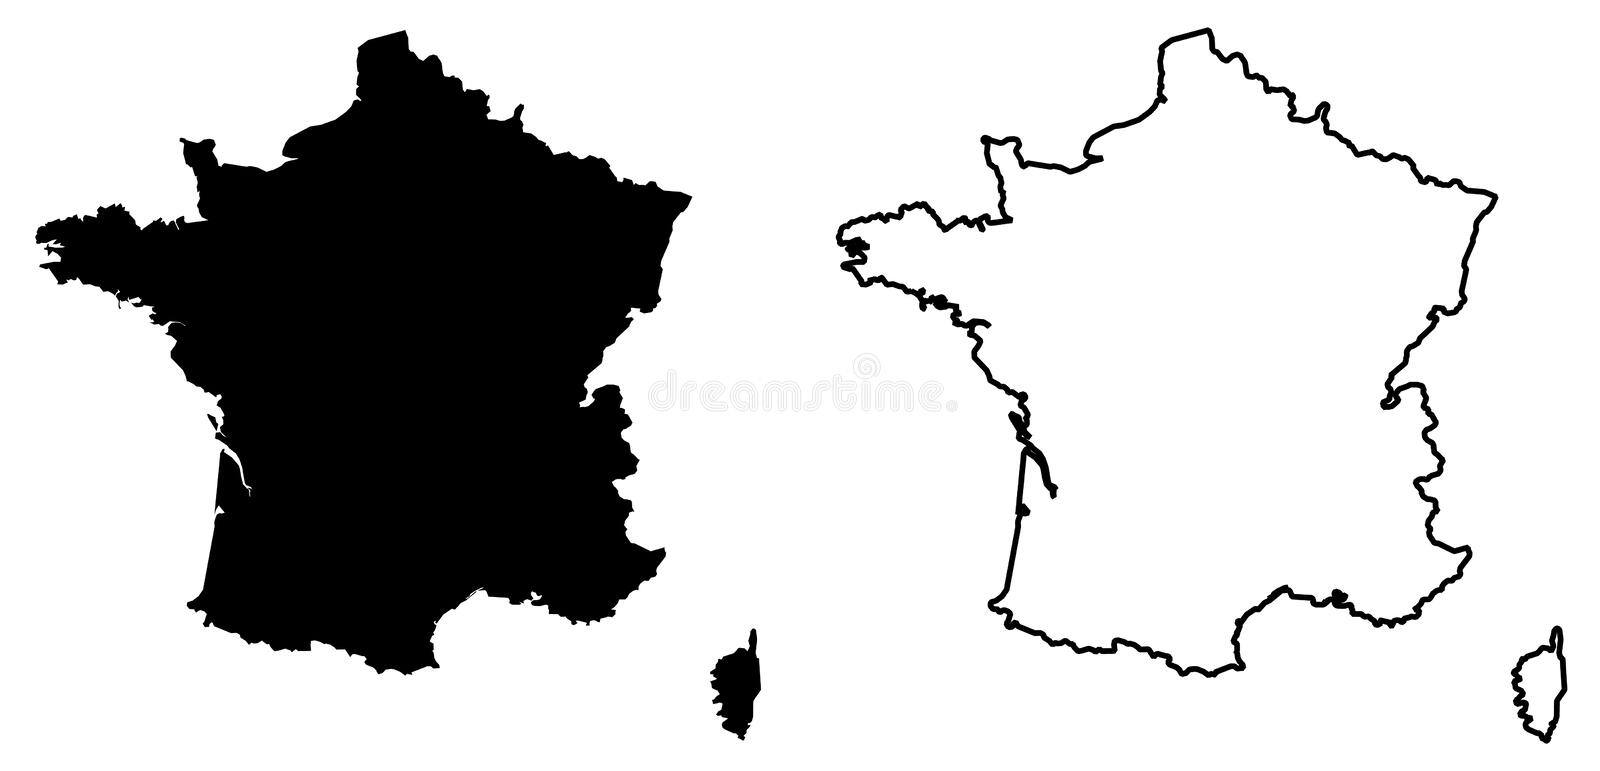 Simple only sharp corners map of France vector drawing. Mercat royalty free illustration